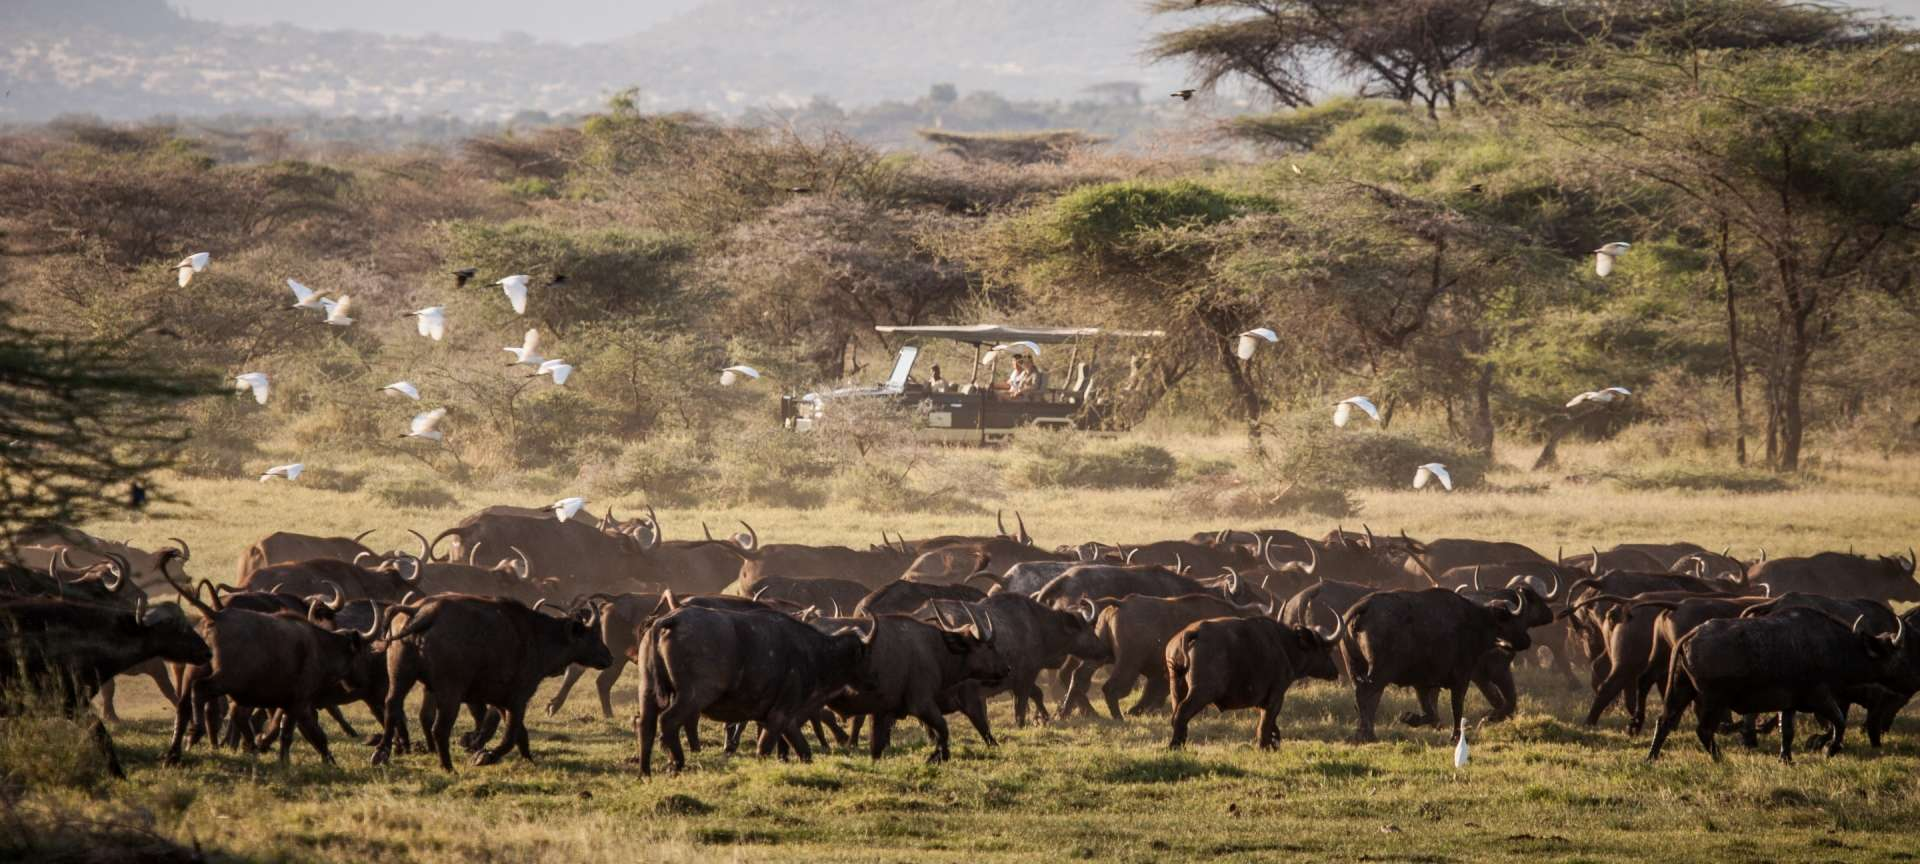 Herds of buffalo traverse the grasslands in Zambia